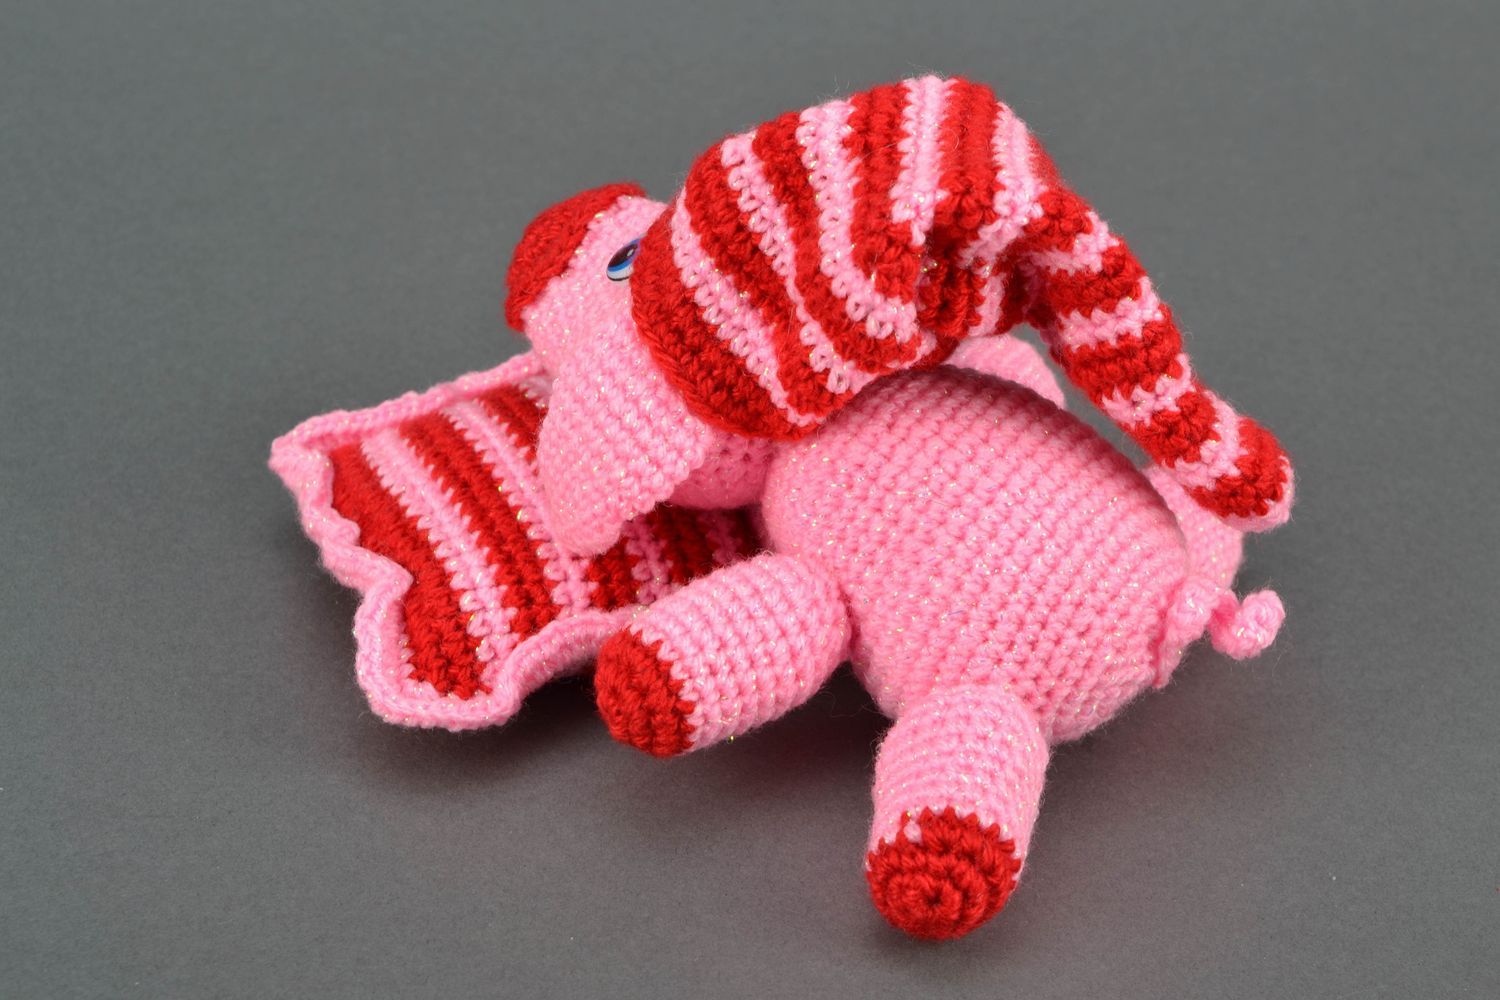 Soft crochet toy Pink Pig on Pillow photo 4